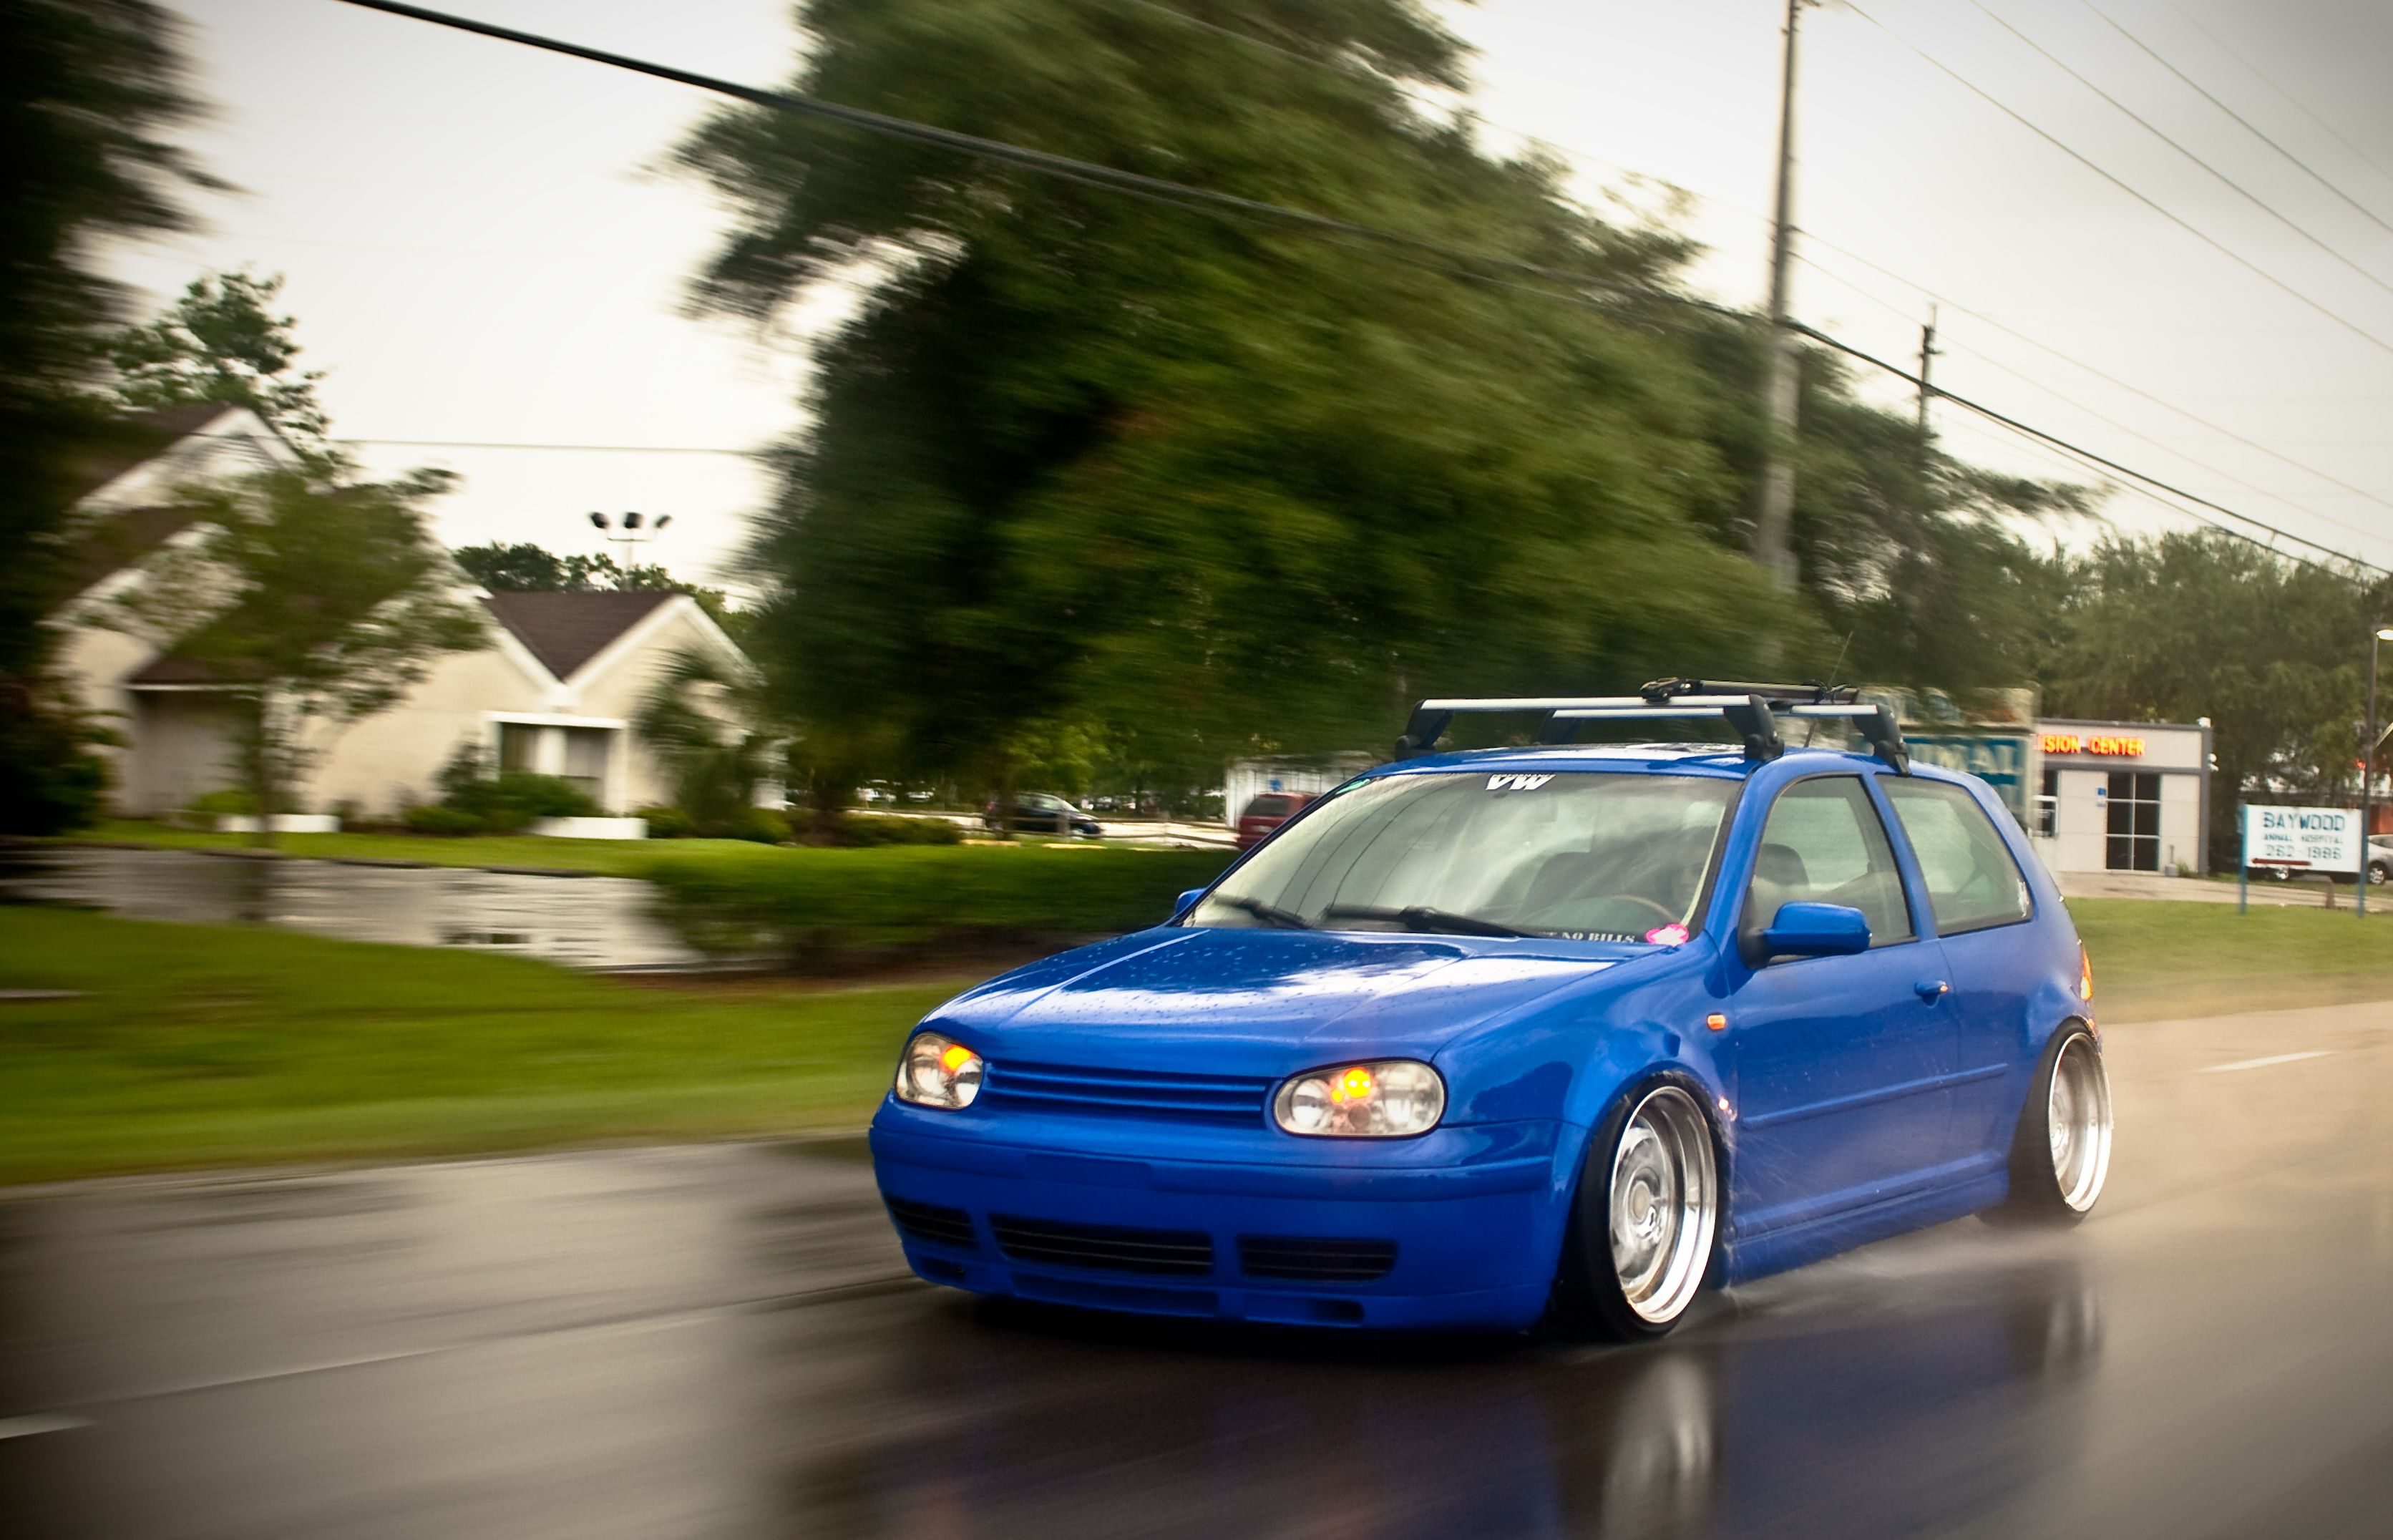 Low Dubs Blue Vw Golf Mk4 With A Roof Rack Vag Addicted Vw